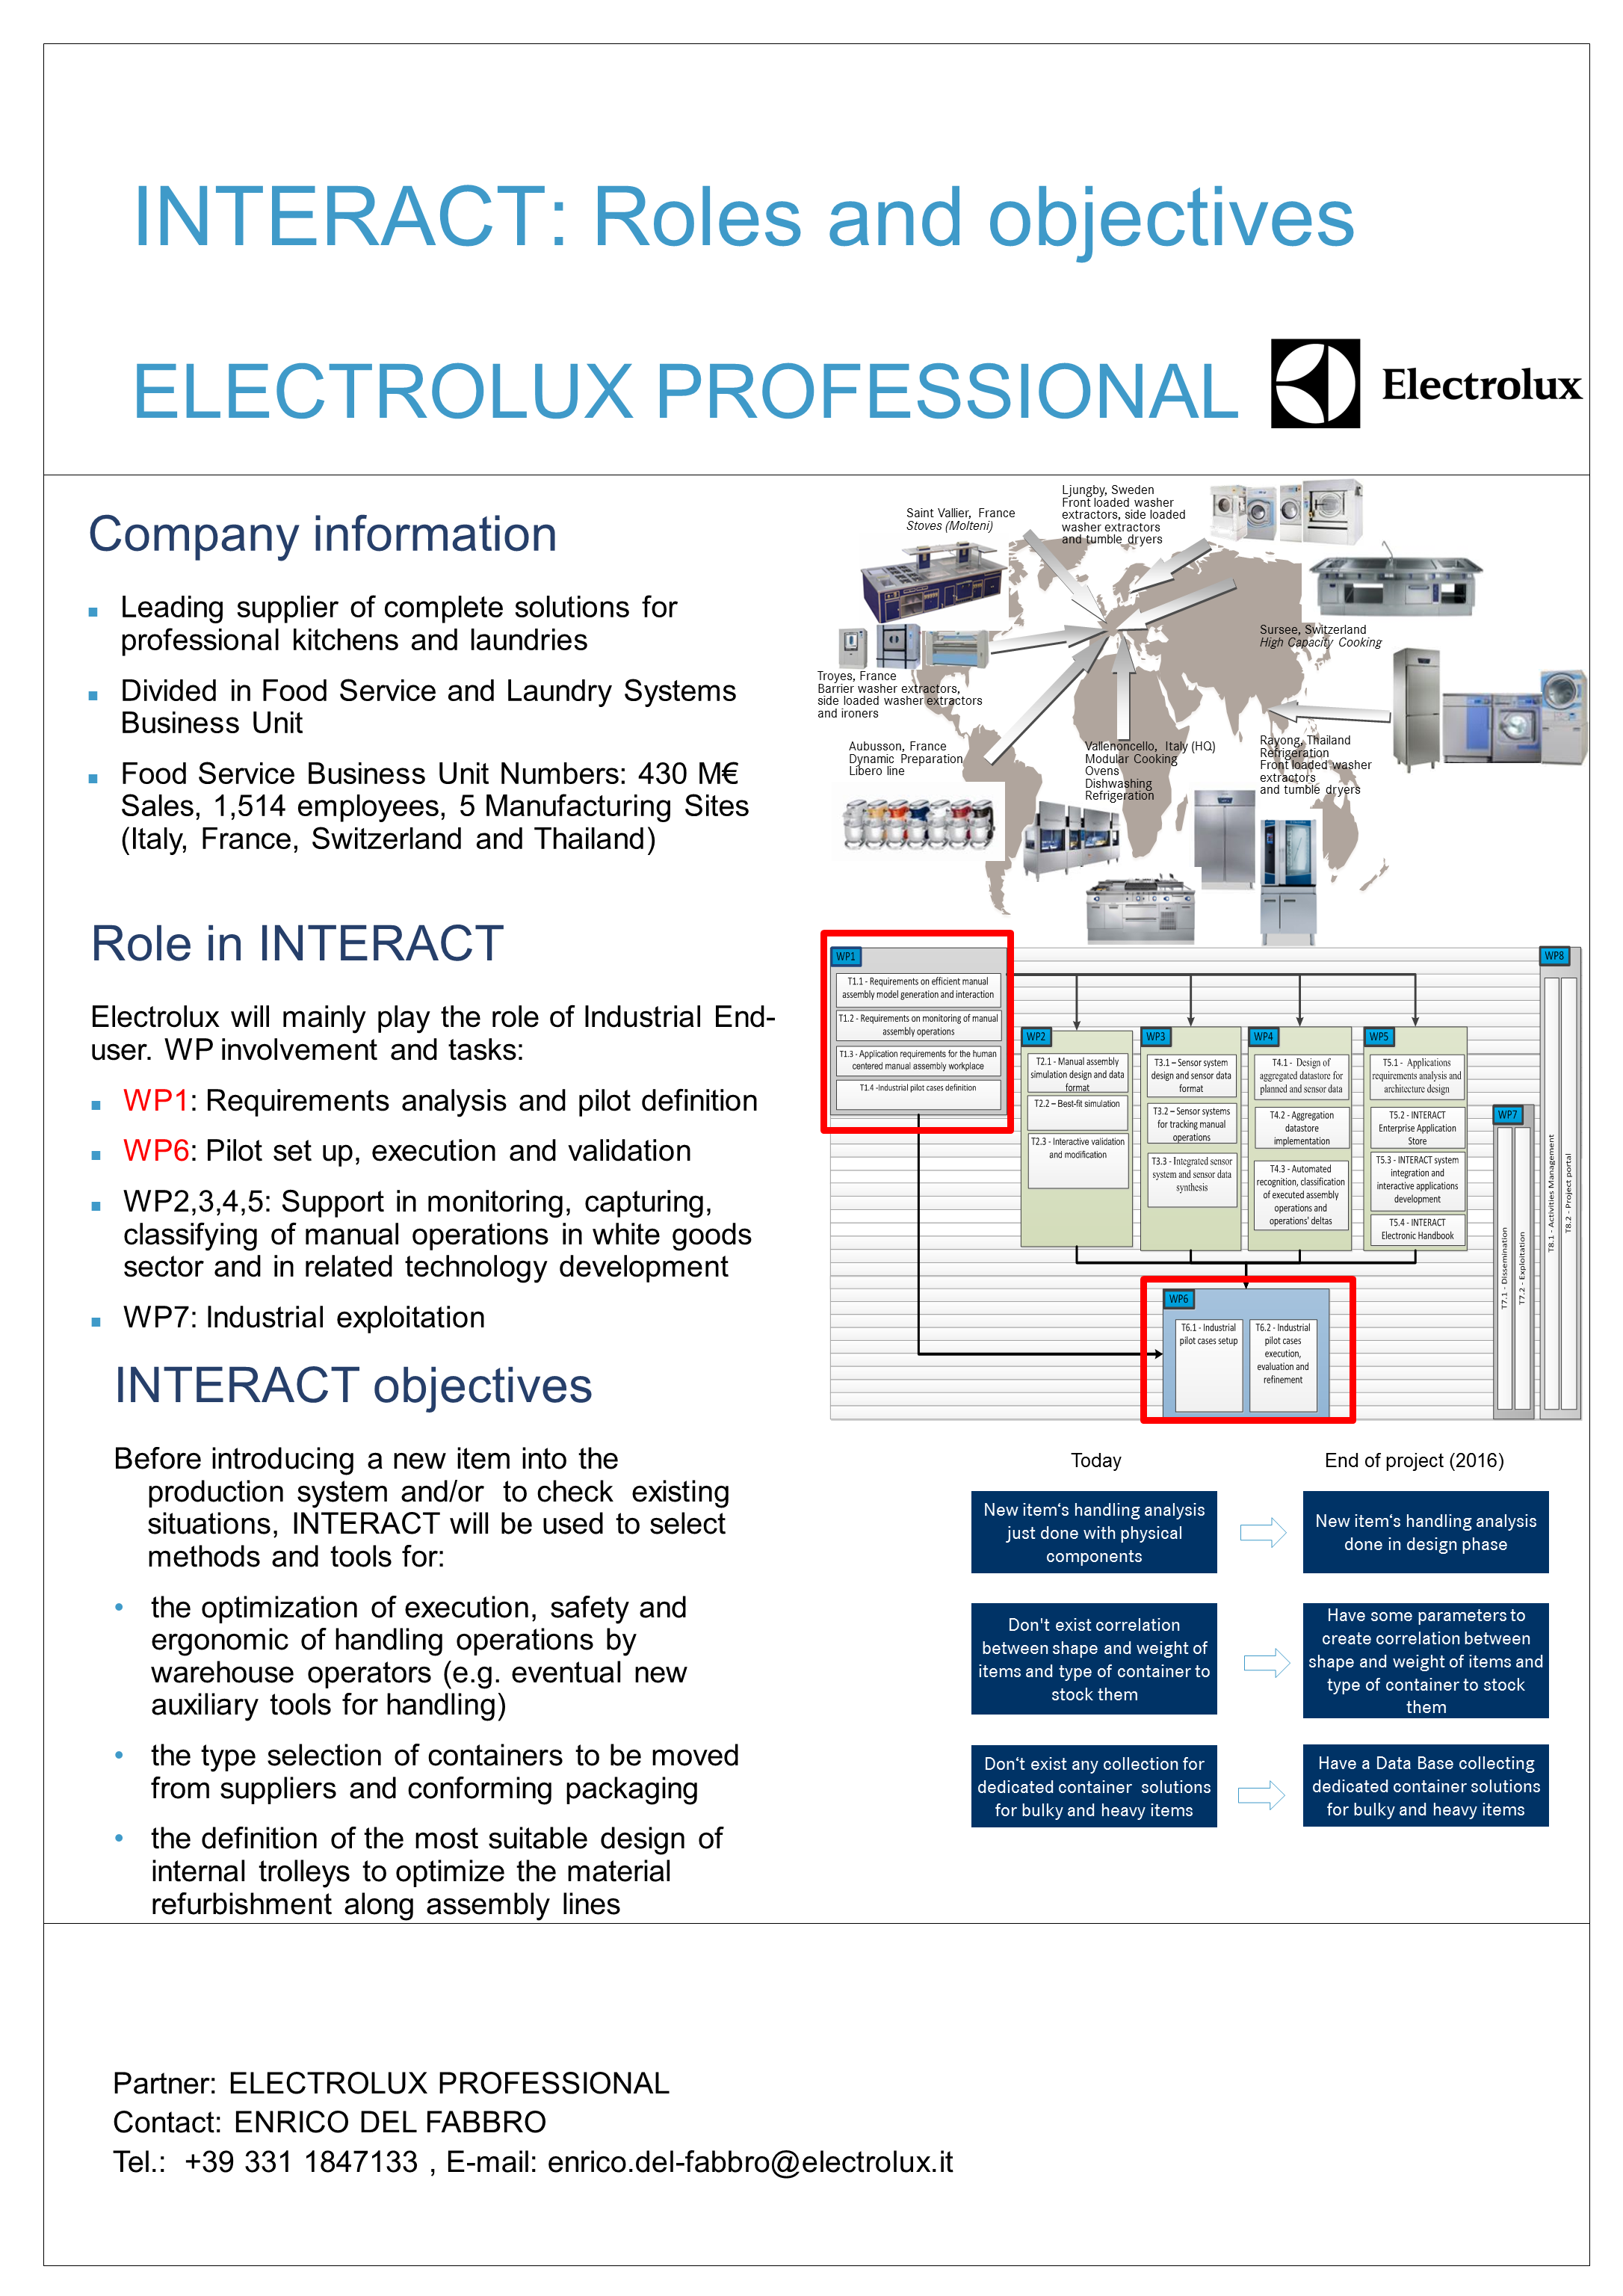 INTERACT Poster Electrolux